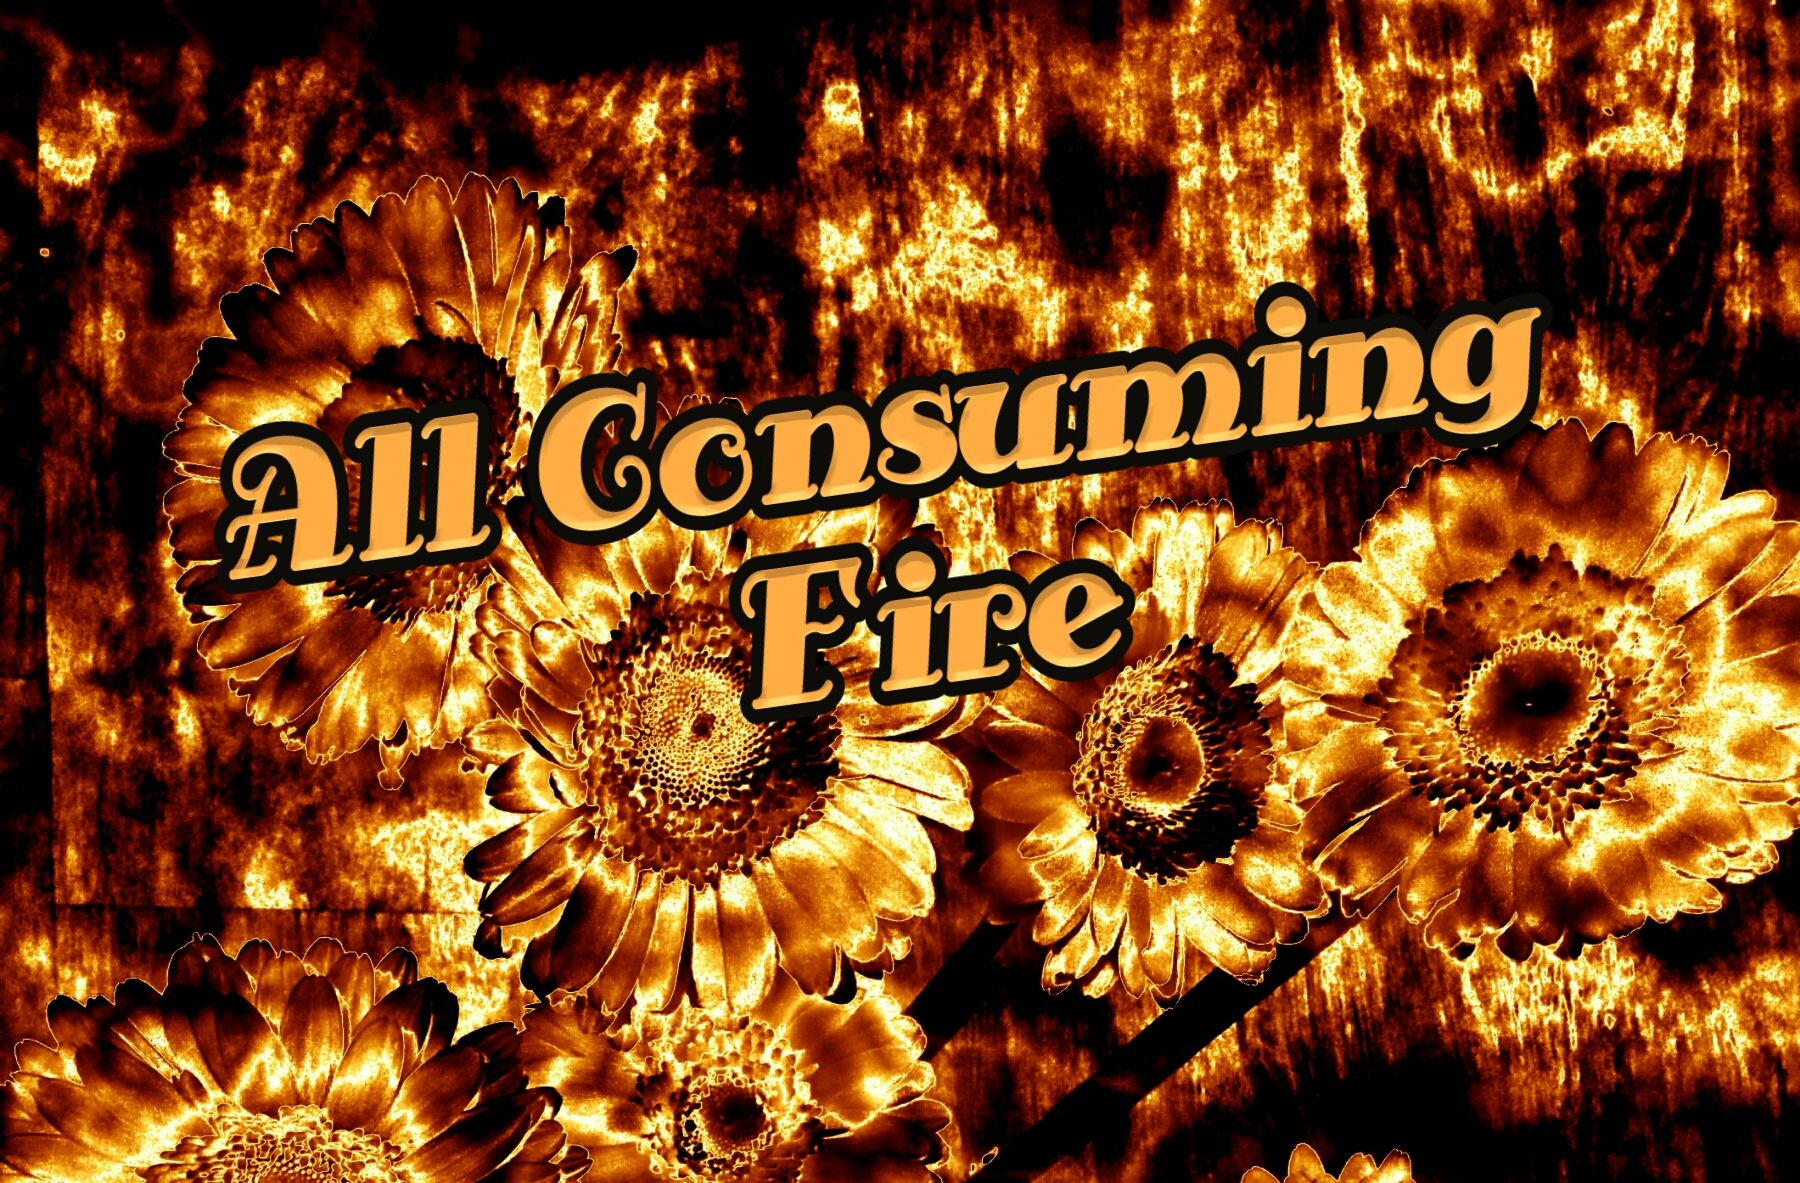 For our G'd isaconsuming fire - Hebrews 12:29 This week we study the Parashah Va'eira (וארא), Exodus 6:2-9:35, Isaiah 66:1-24, and Matthew 12;1-14. Va'eira, meaning And I appeared comes from the second verse of the Torah portion Exodus 6:3. The portion begins with the four expressions of Redemption. The Almighty G'd promises to remove His People from the bondage of slavery, rescue His People, redeem His People, and take them as His Bride. This my friends, is a rich narrati...